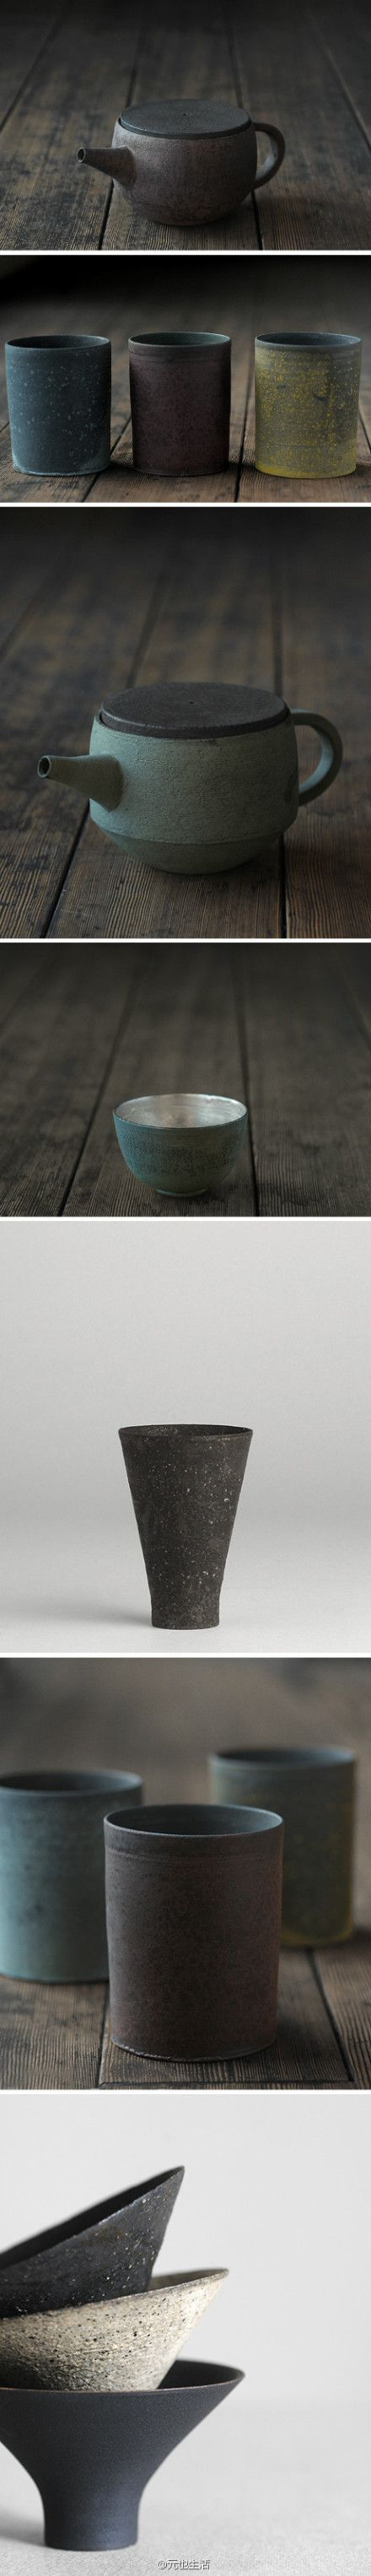 """I love the simplicity of these pieces, yet the richness... ultimately, """"less is more""""."""